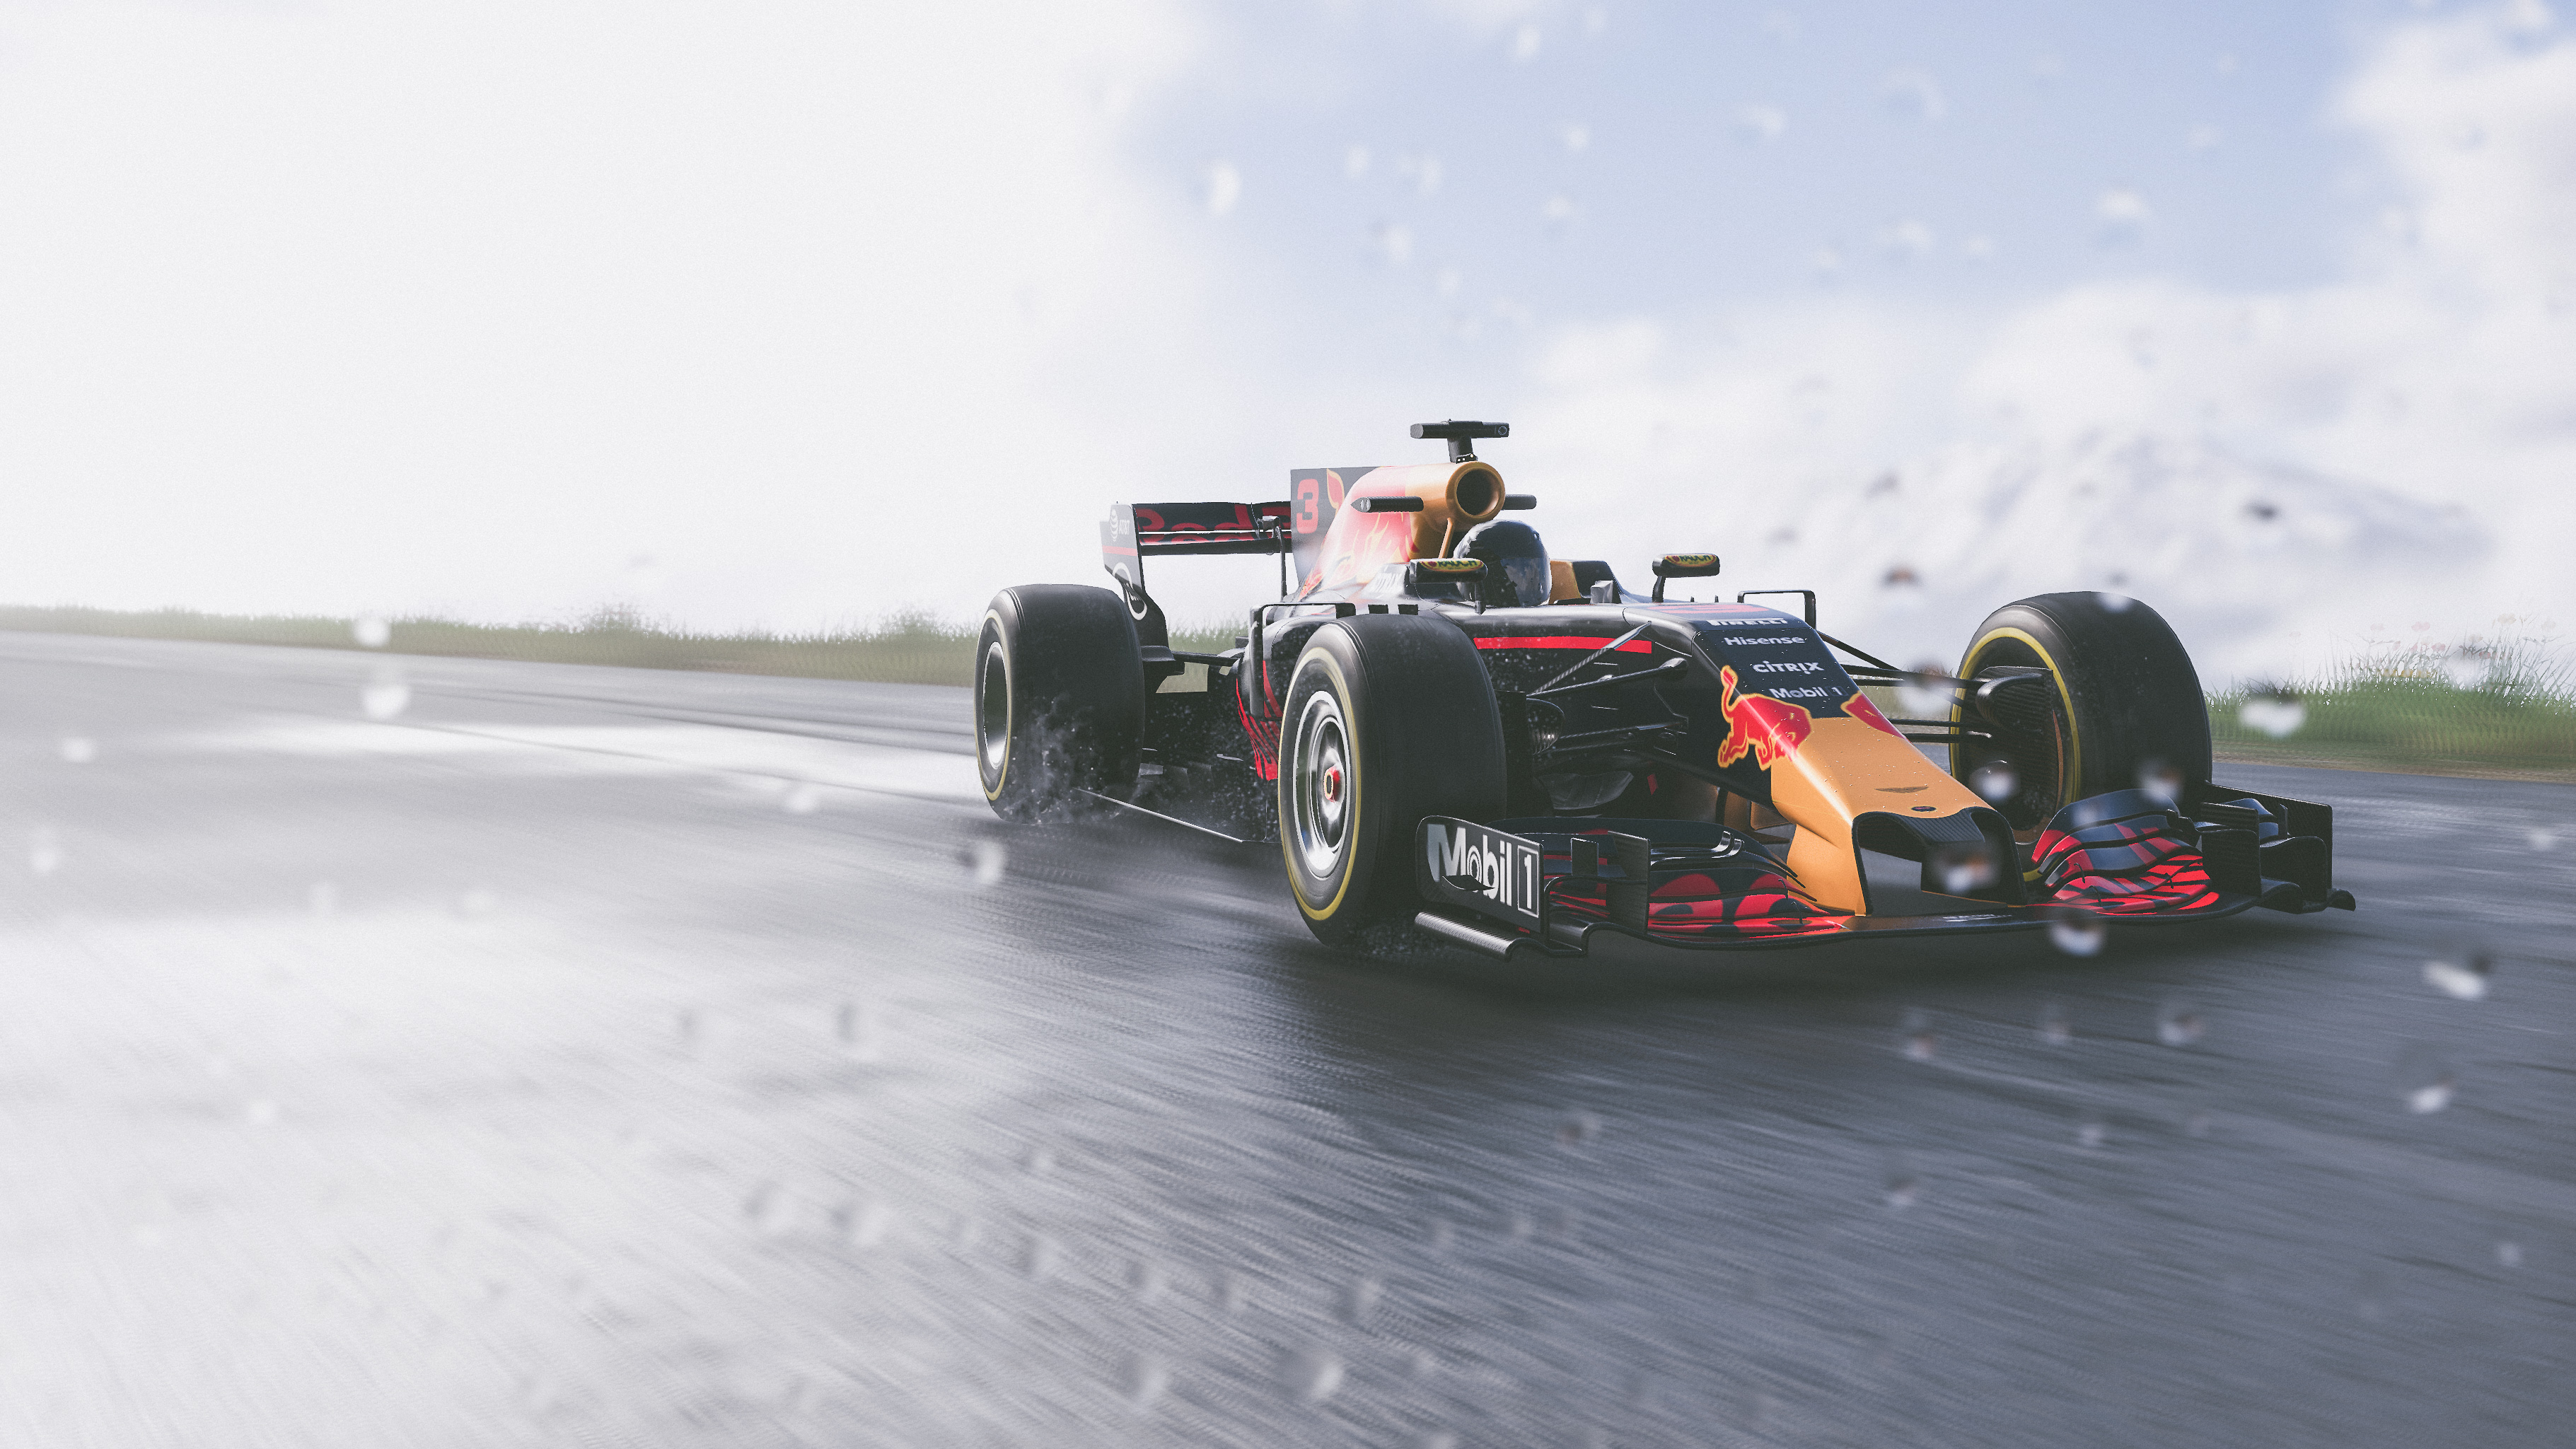 The Crew 2 Red Bull F1 Car 4k Hd Games 4k Wallpapers